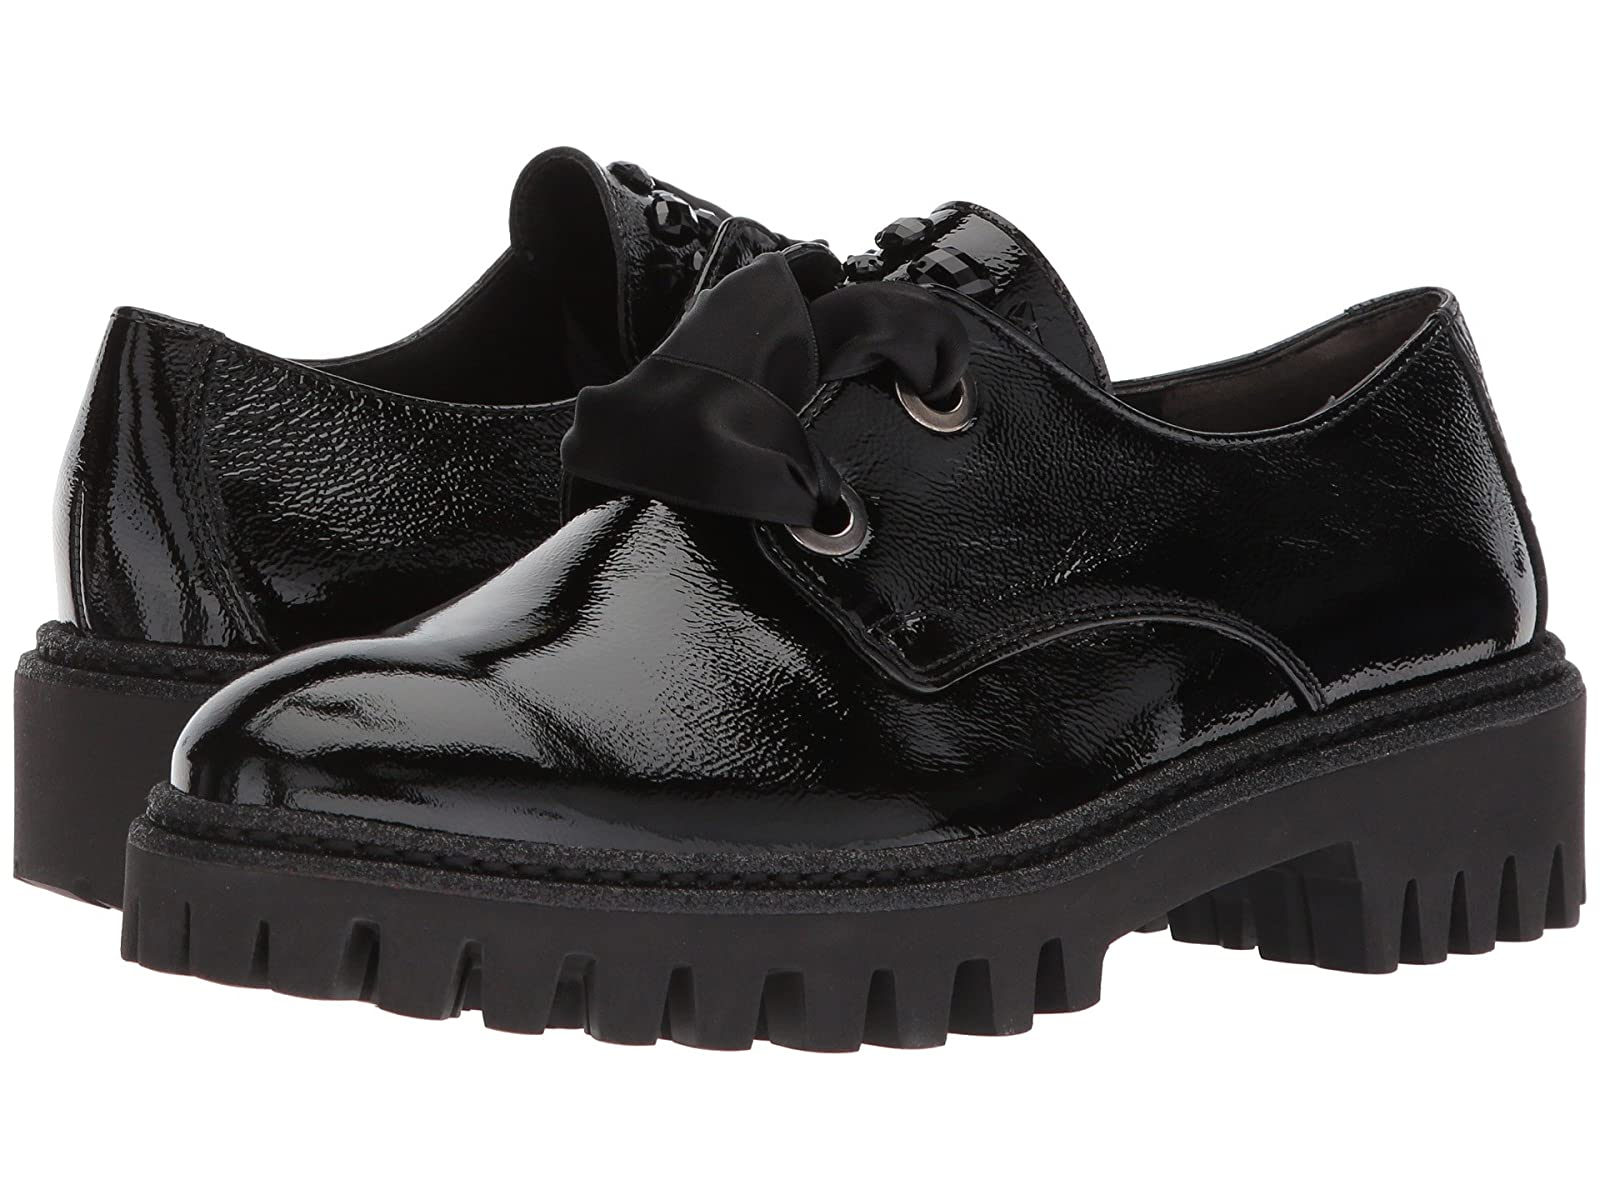 Paul Green Rory LugCheap and distinctive eye-catching shoes